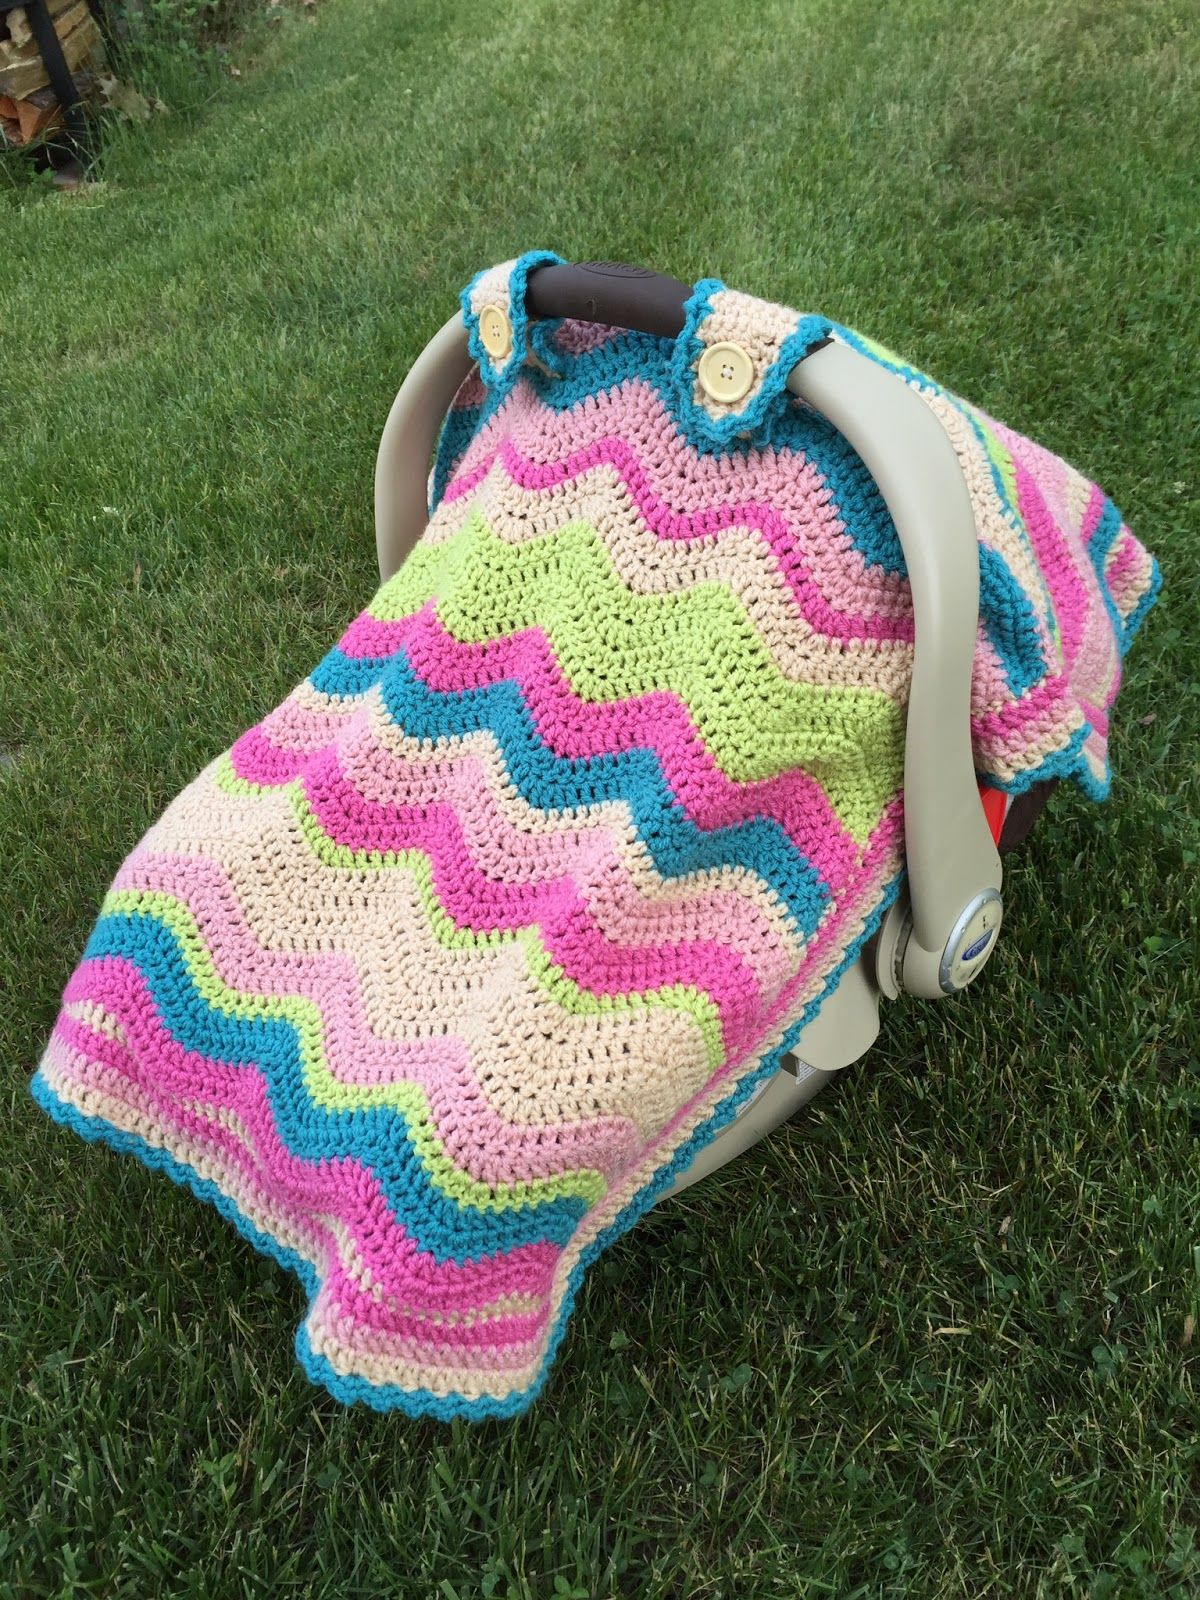 Skein and hook free crochet pattern emerson car seat cover or baby skein and hook free crochet pattern emerson car seat cover or baby blanket dt1010fo